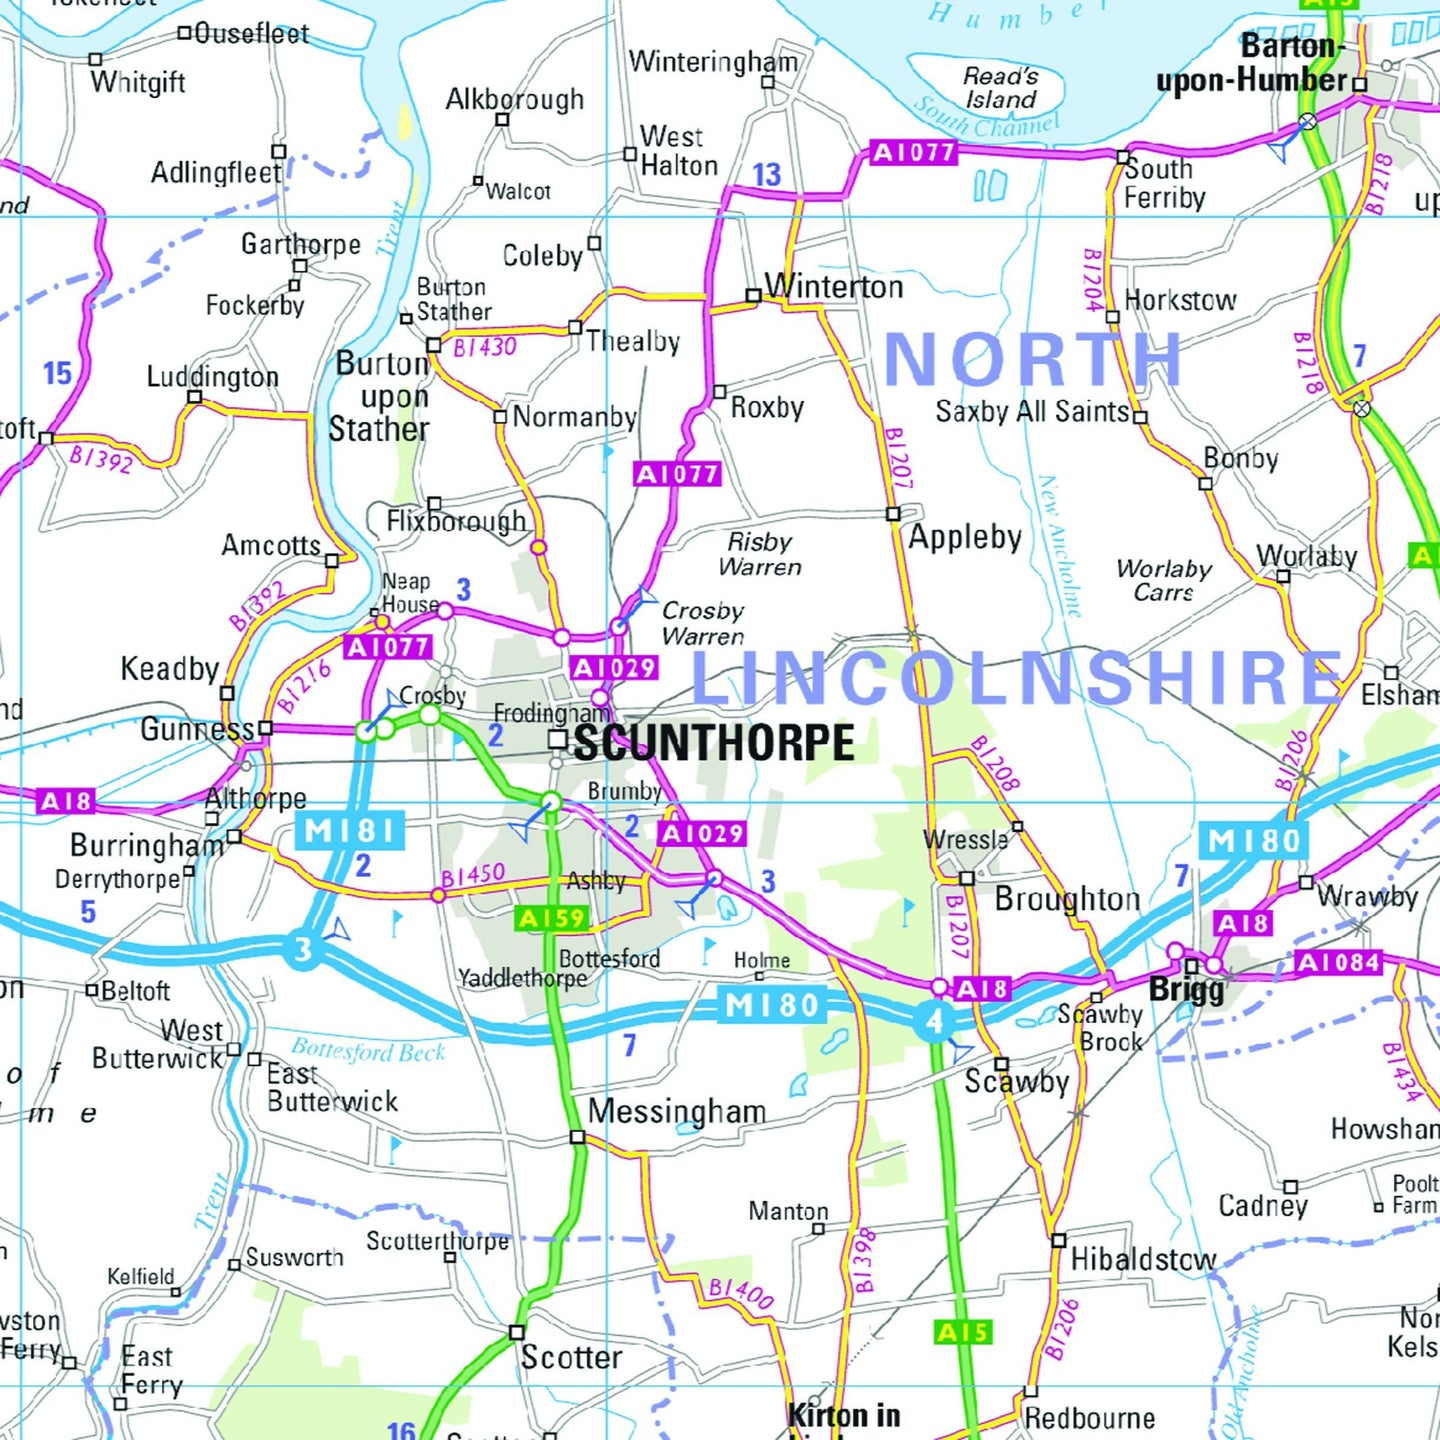 Detailed Road Map Of England.Northern England Regional Road Map Wall Map 4